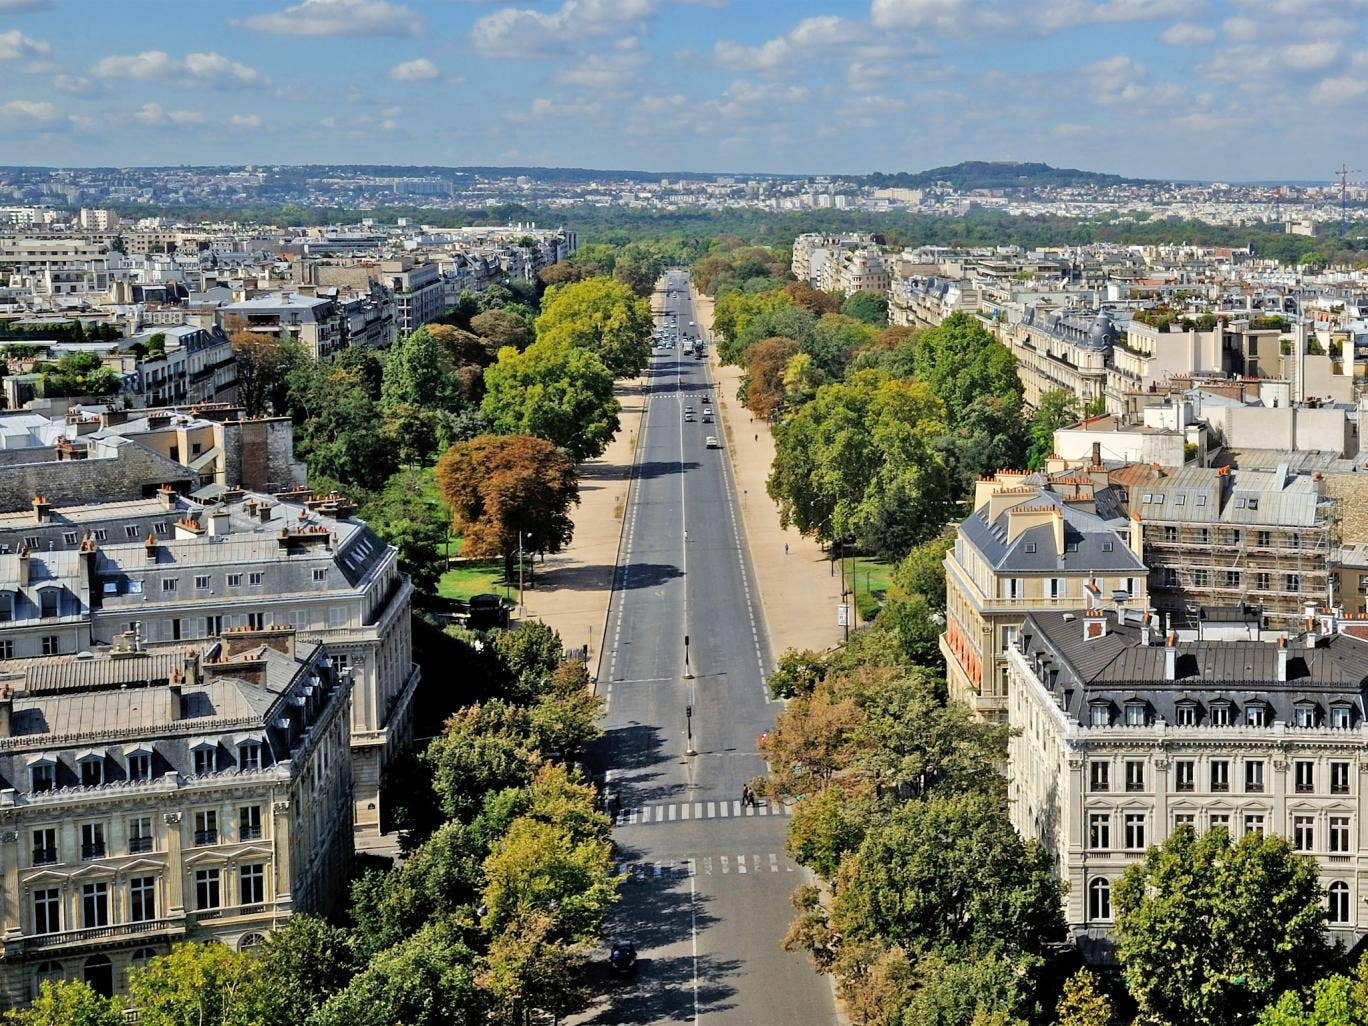 Avenue Foch is home to billionaires including the families of dictators